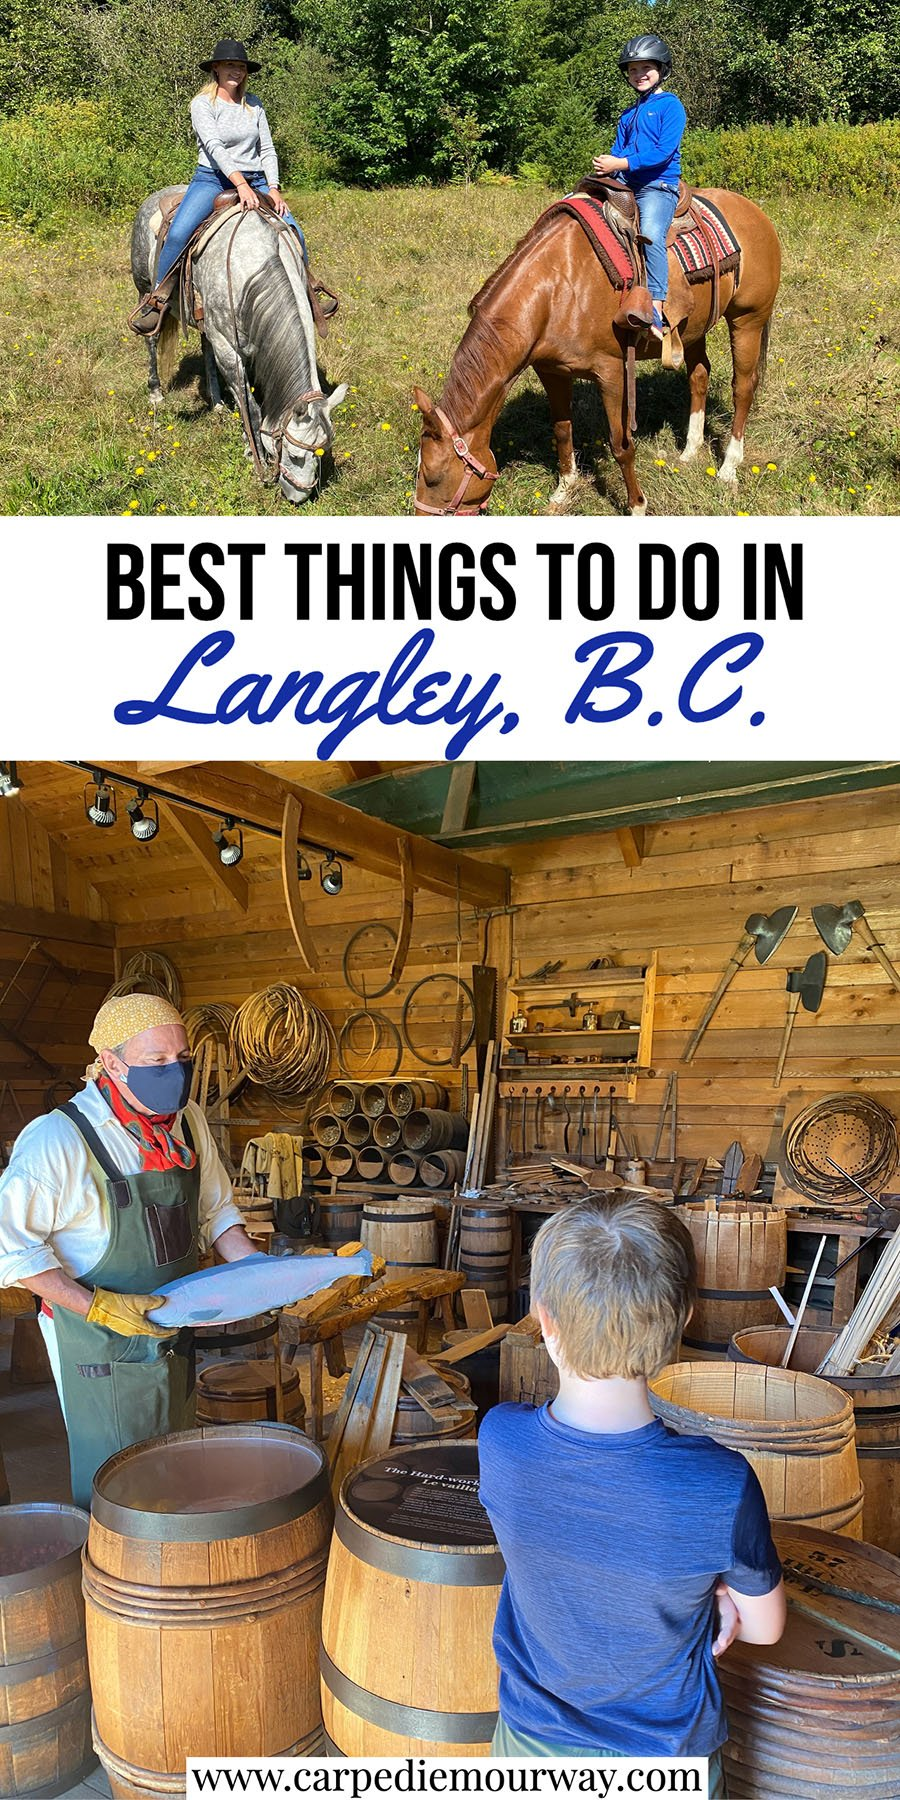 Best Things to do in Langley BC